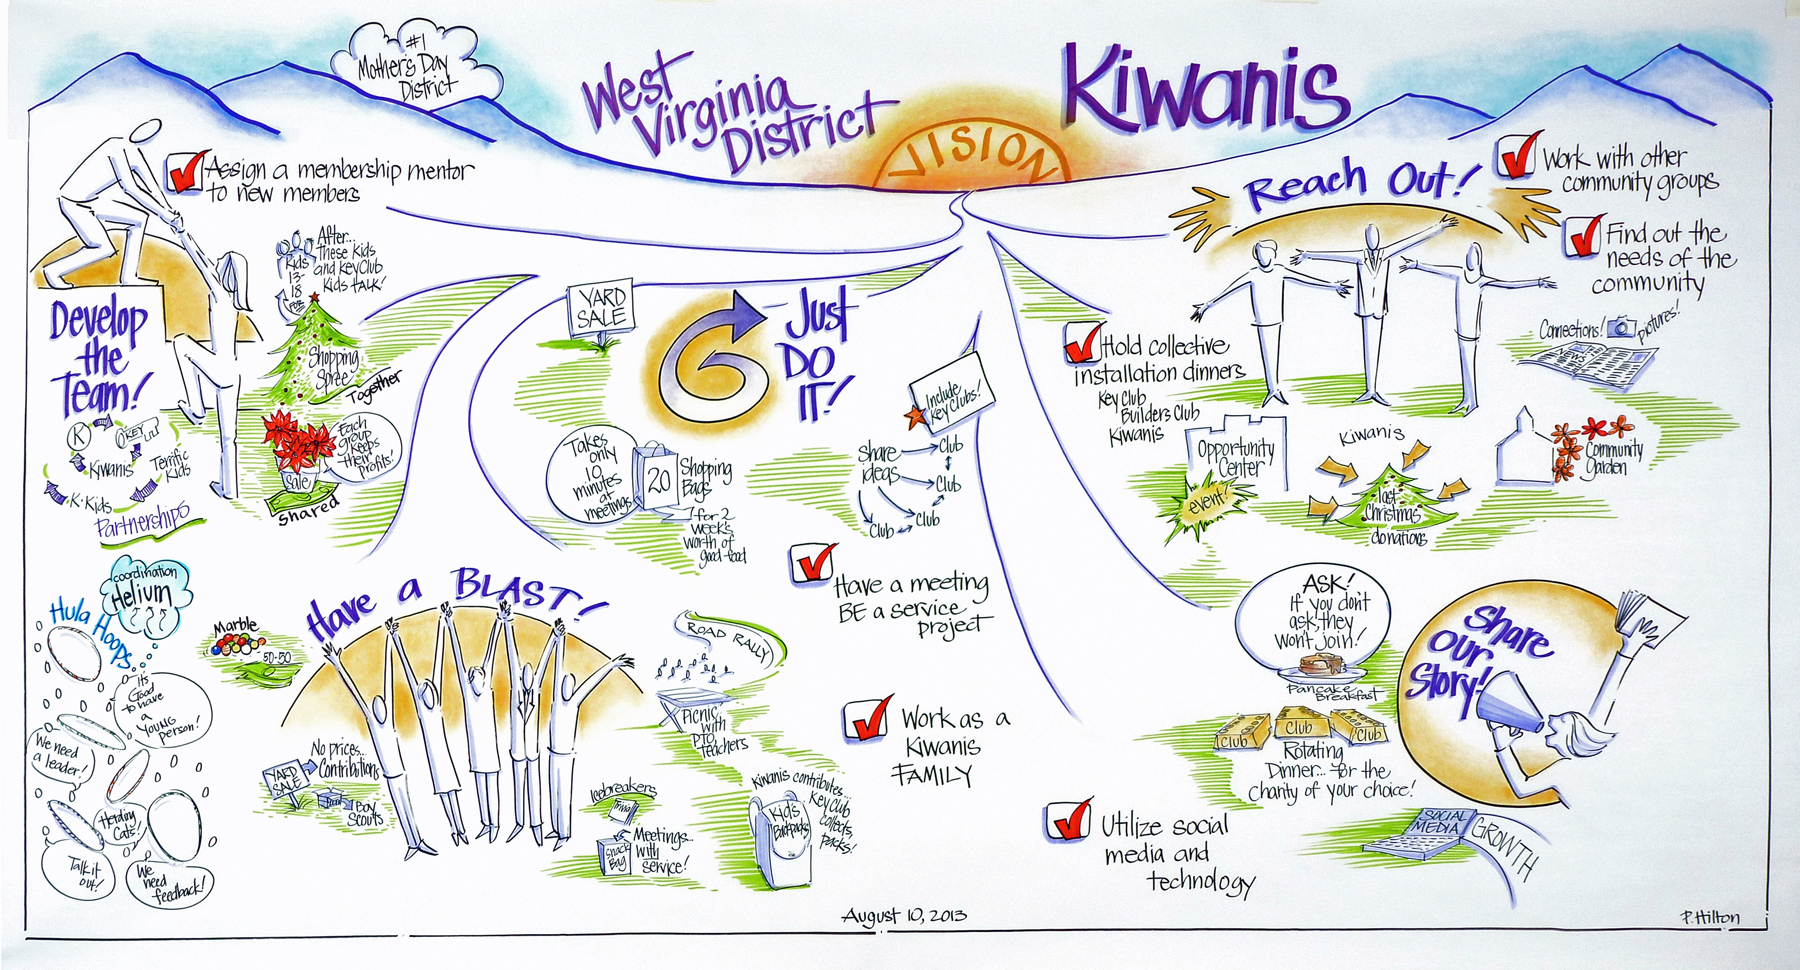 Components of West Virginia Kiwanis' vision